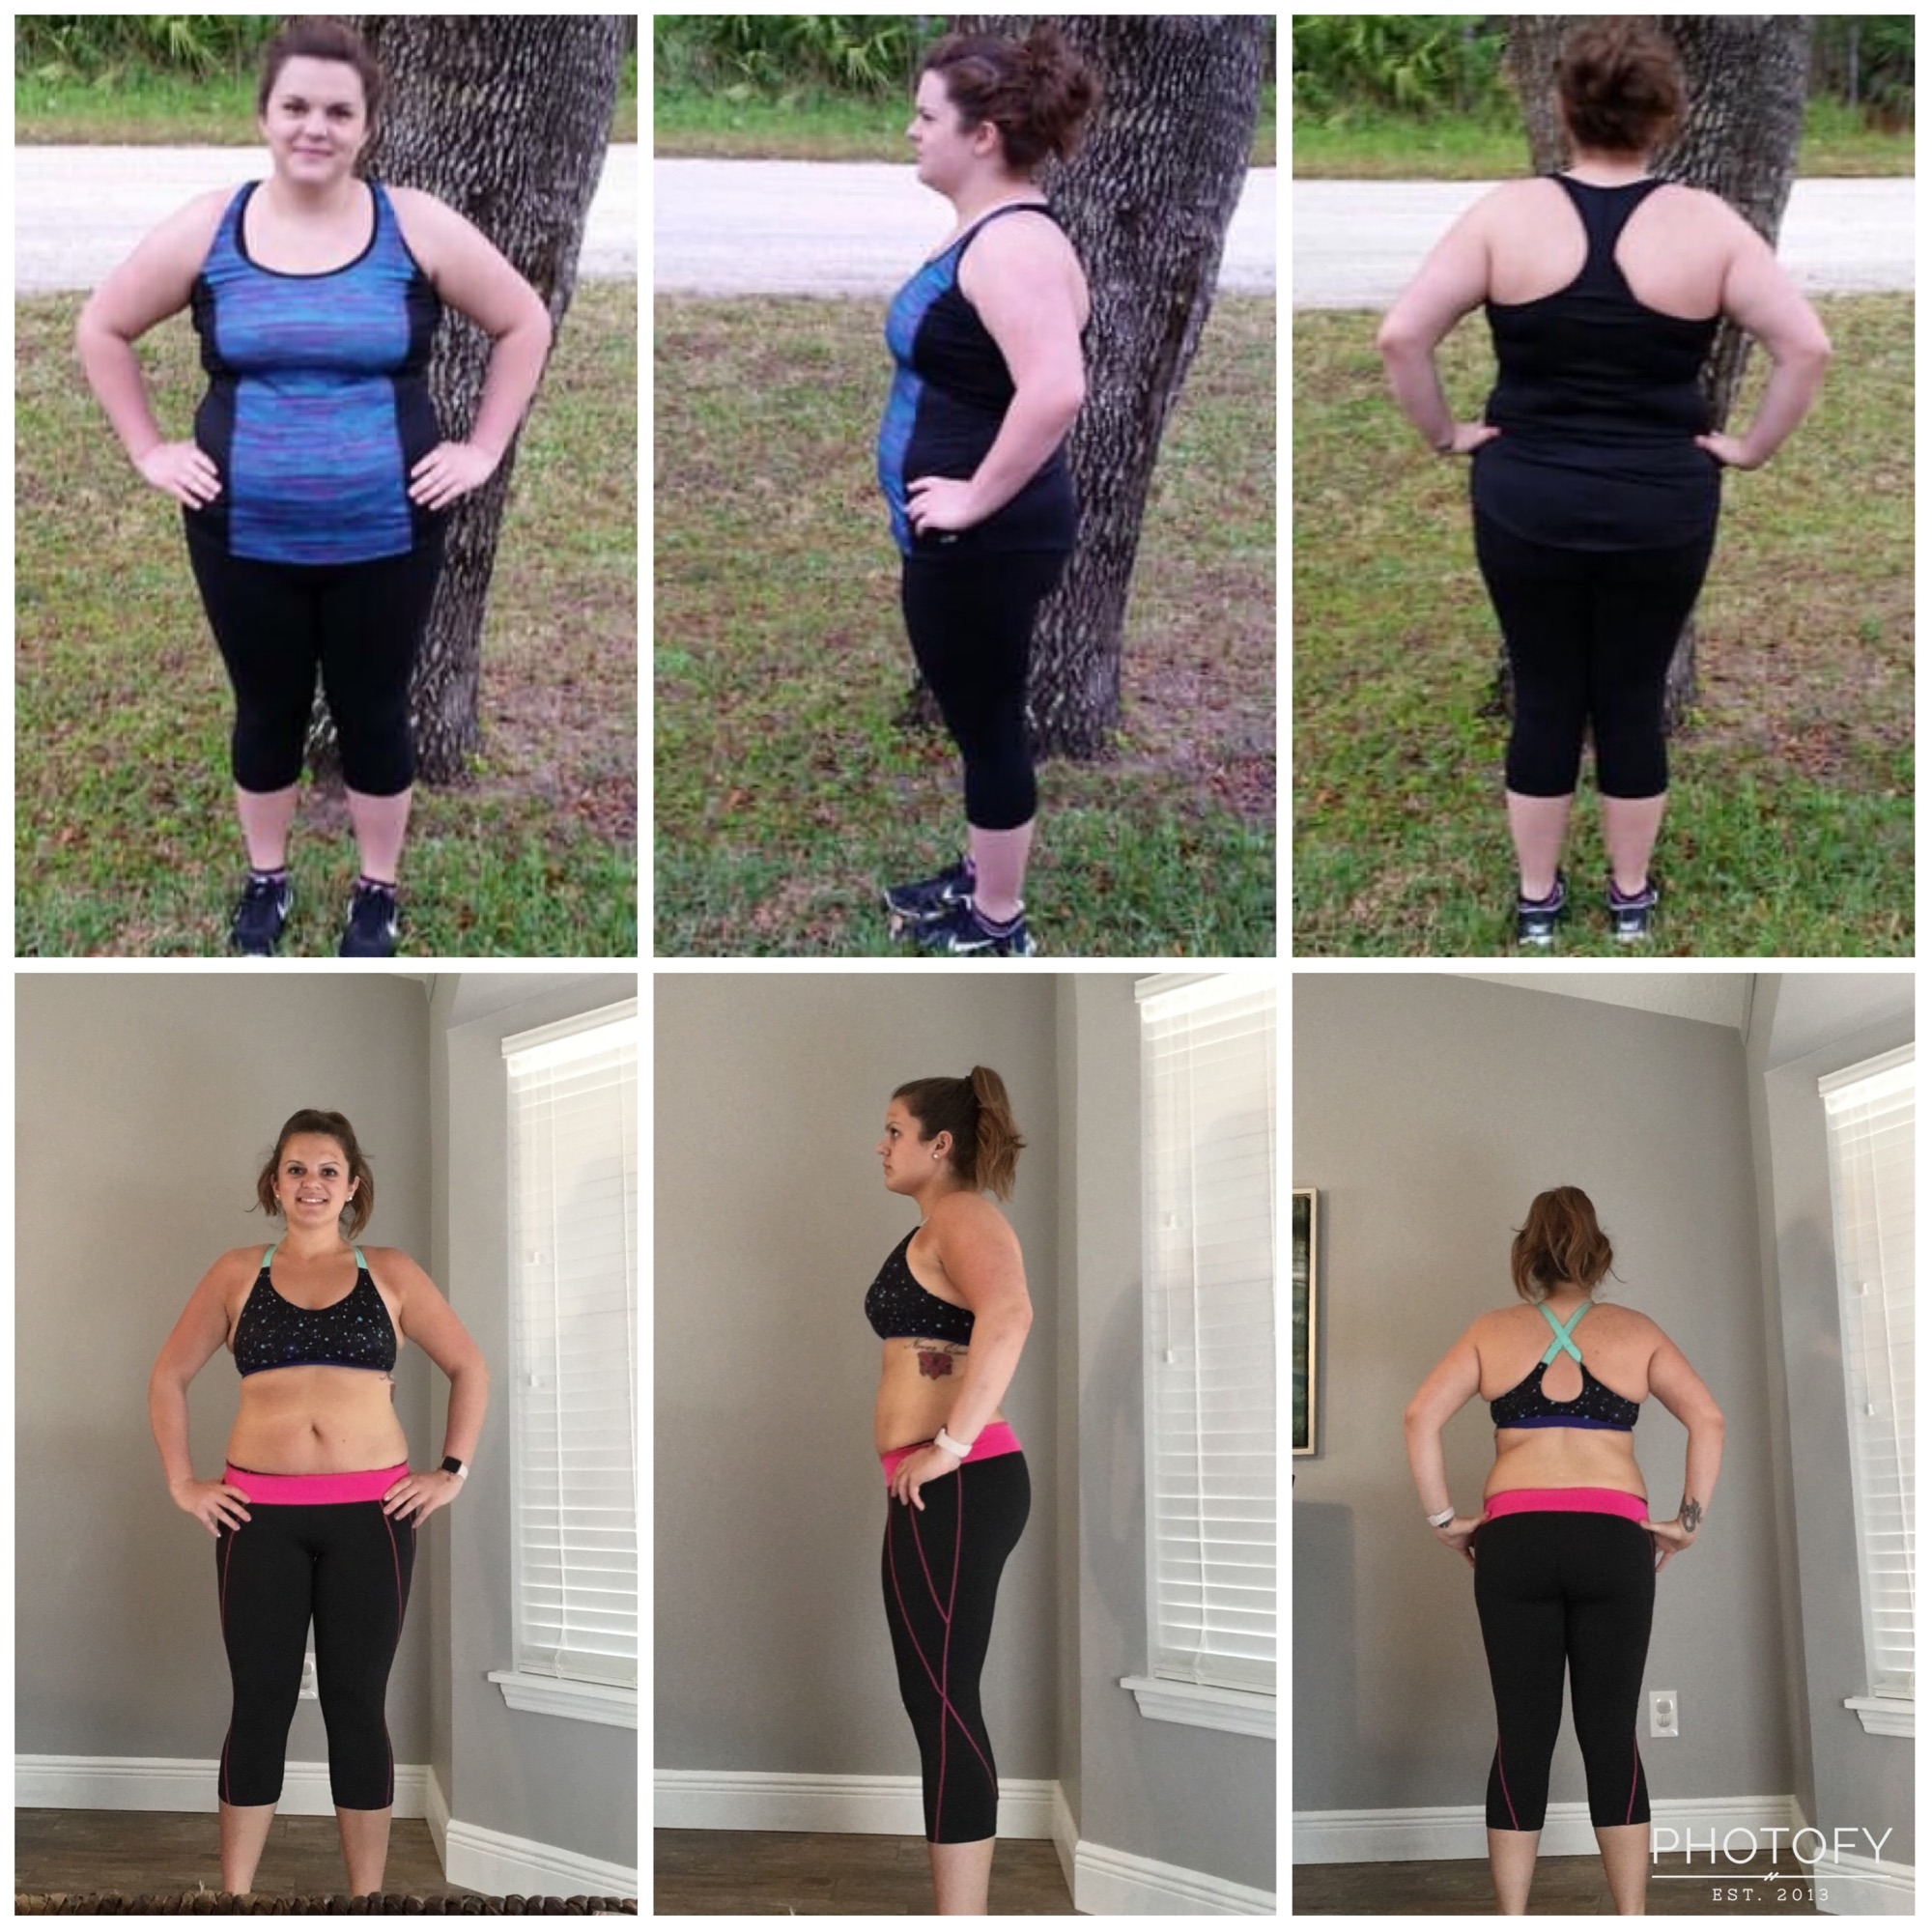 Lindsey lost 50 pounds! See my before and after weight loss pictures, and read amazing weight loss success stories from real women and their best weight loss diet plans and programs. Motivation to lose weight with walking and inspiration from before and after weightloss pics and photos.